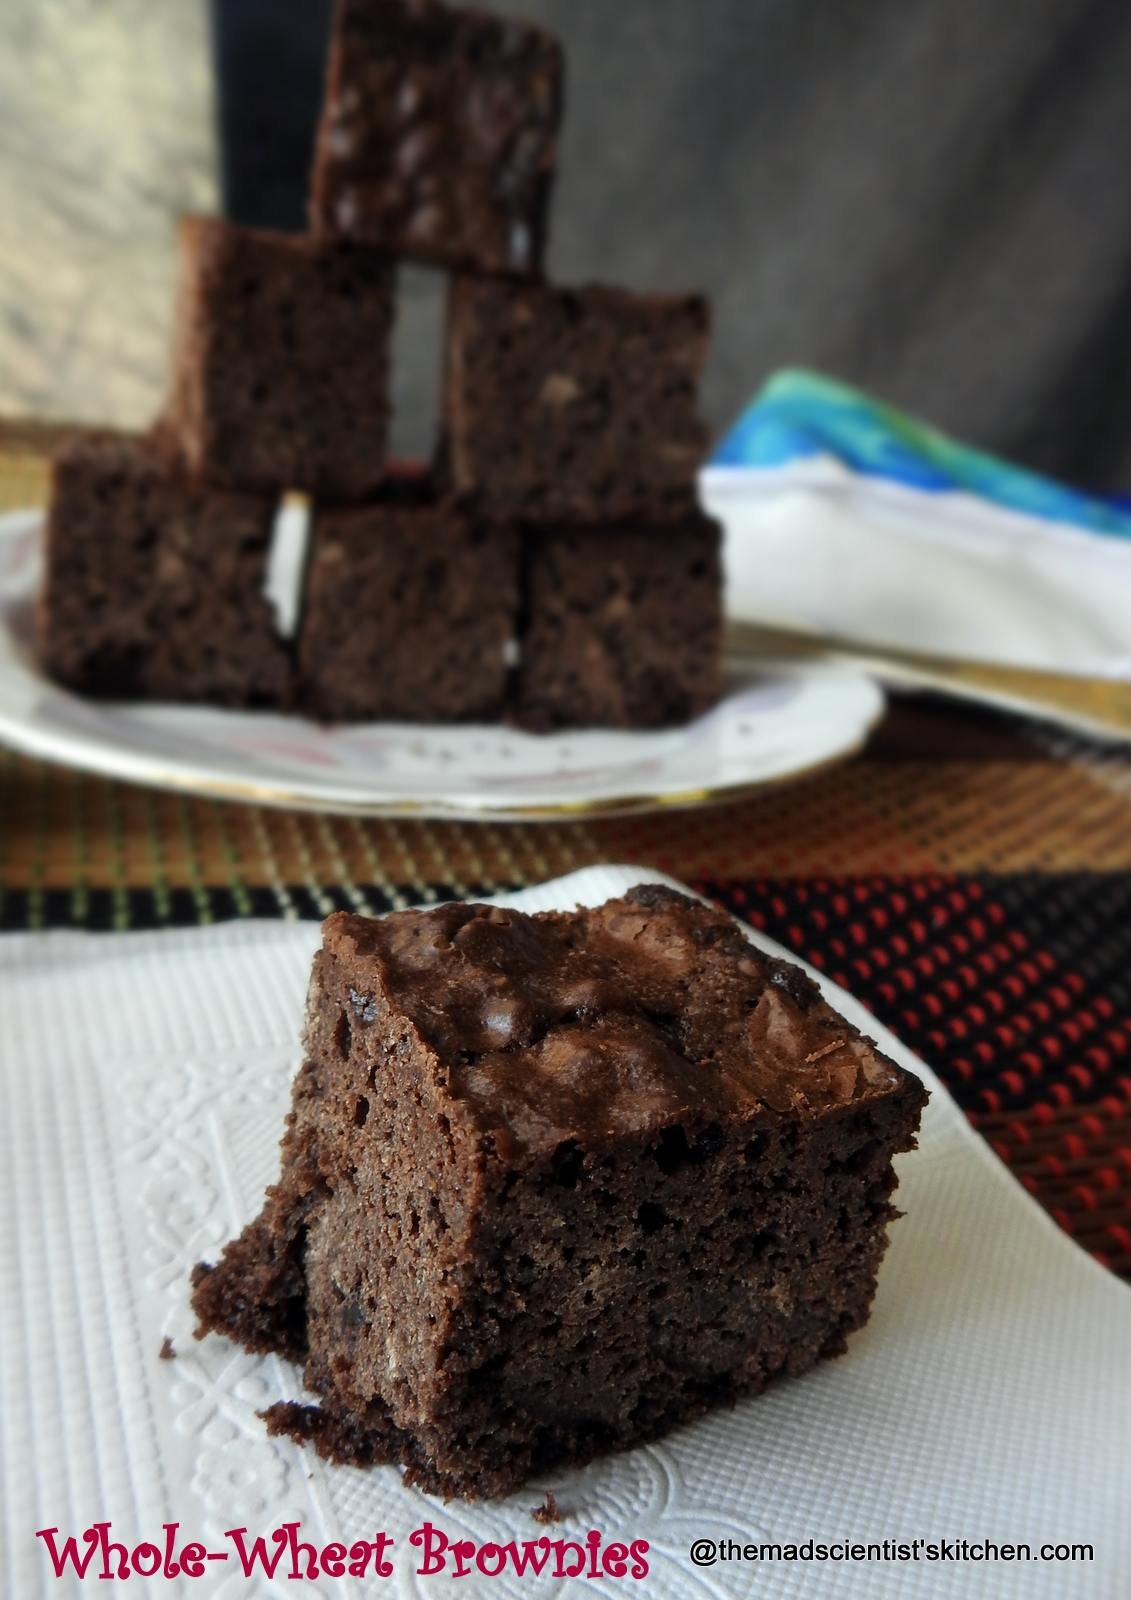 Chocolate brownies, X'Mas